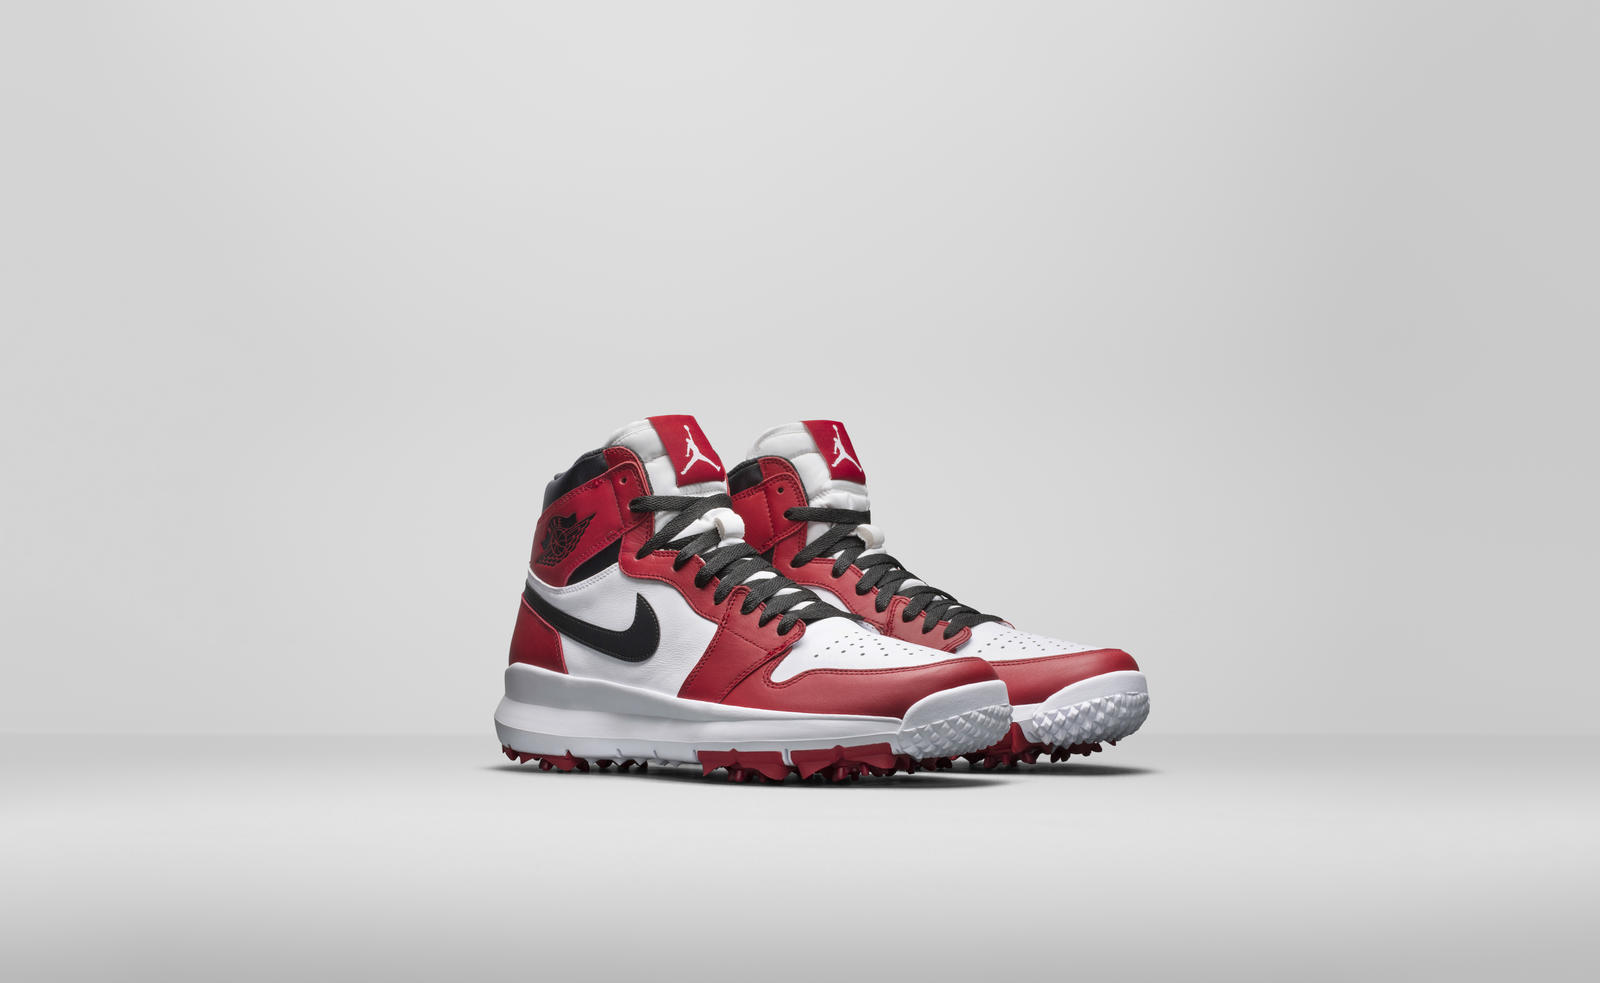 7f31904de581 NO BUY SELL TRADE POSTS) Air Jordan GOLF footwear - Jordan Trainer ...